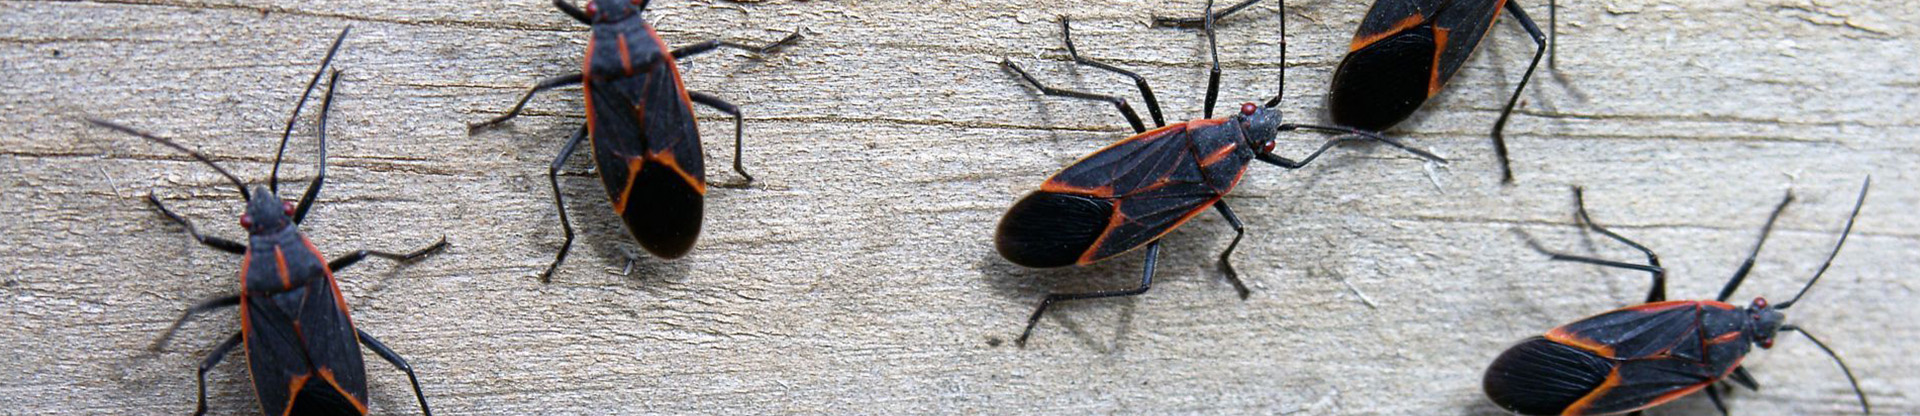 residential and commercial pest control for boxelder bugs